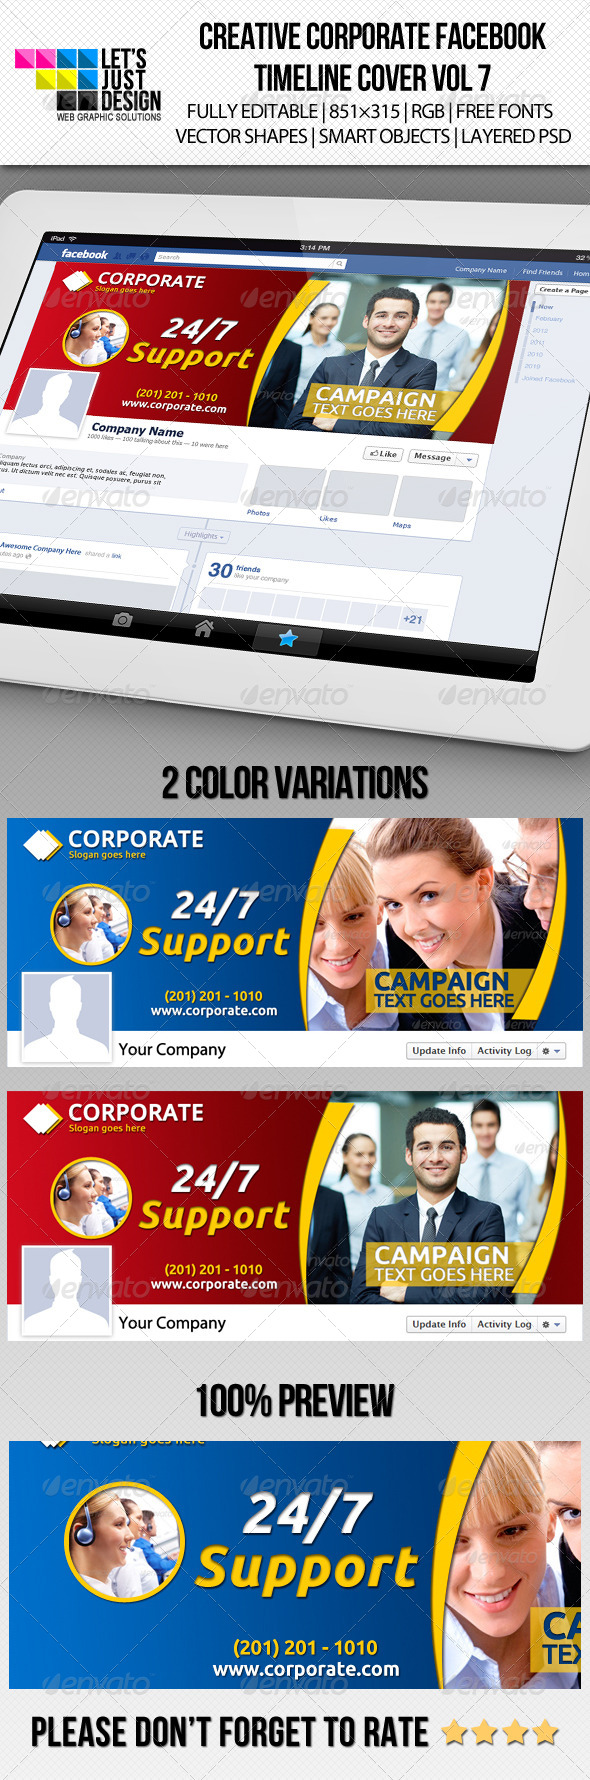 GraphicRiver Creative Corporate Facebook Timeline Cover Vol 7 5564606